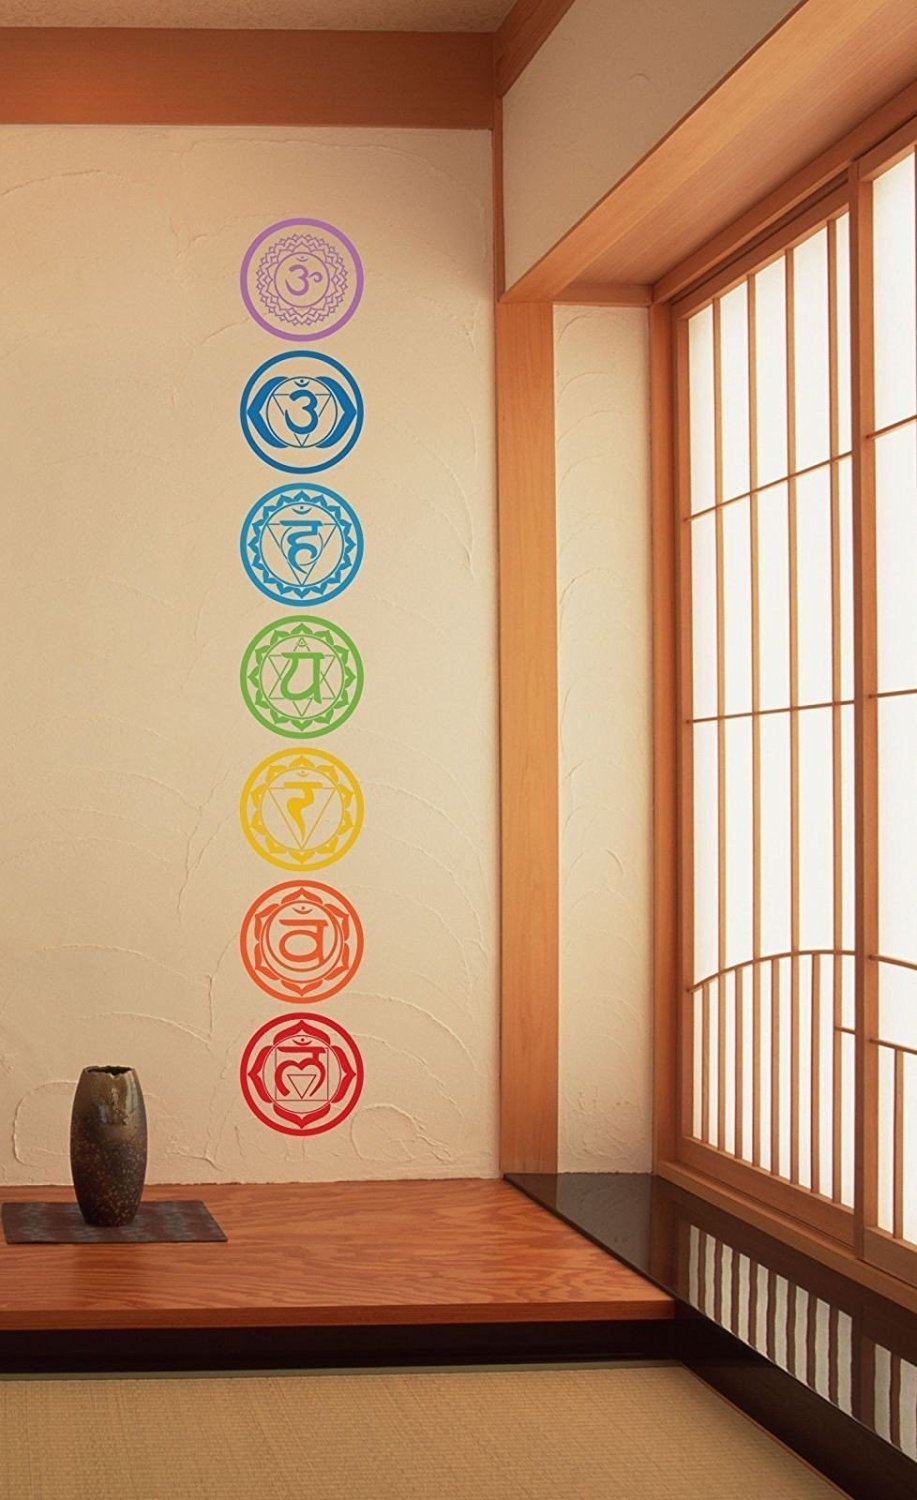 7pcs//set Chakras Symbols Removable Vinyl Wall Stickers Mandala Yoga Om Meditation Creative Wall Decals Art Home Decor YD008